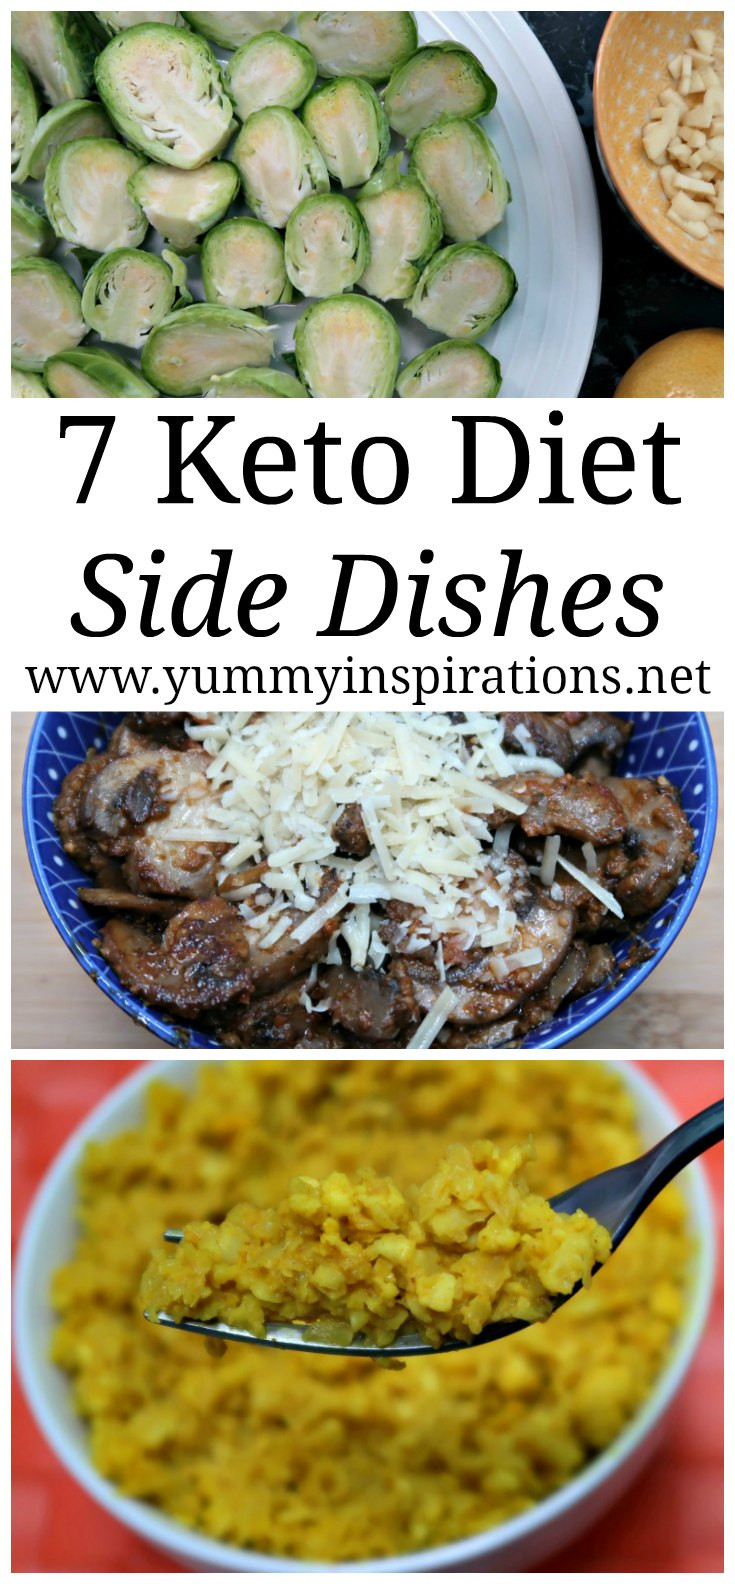 Low Carb Thanksgiving Side Dishes  7 Keto Side Dishes Easy Low Carb Sides LCHF Recipes